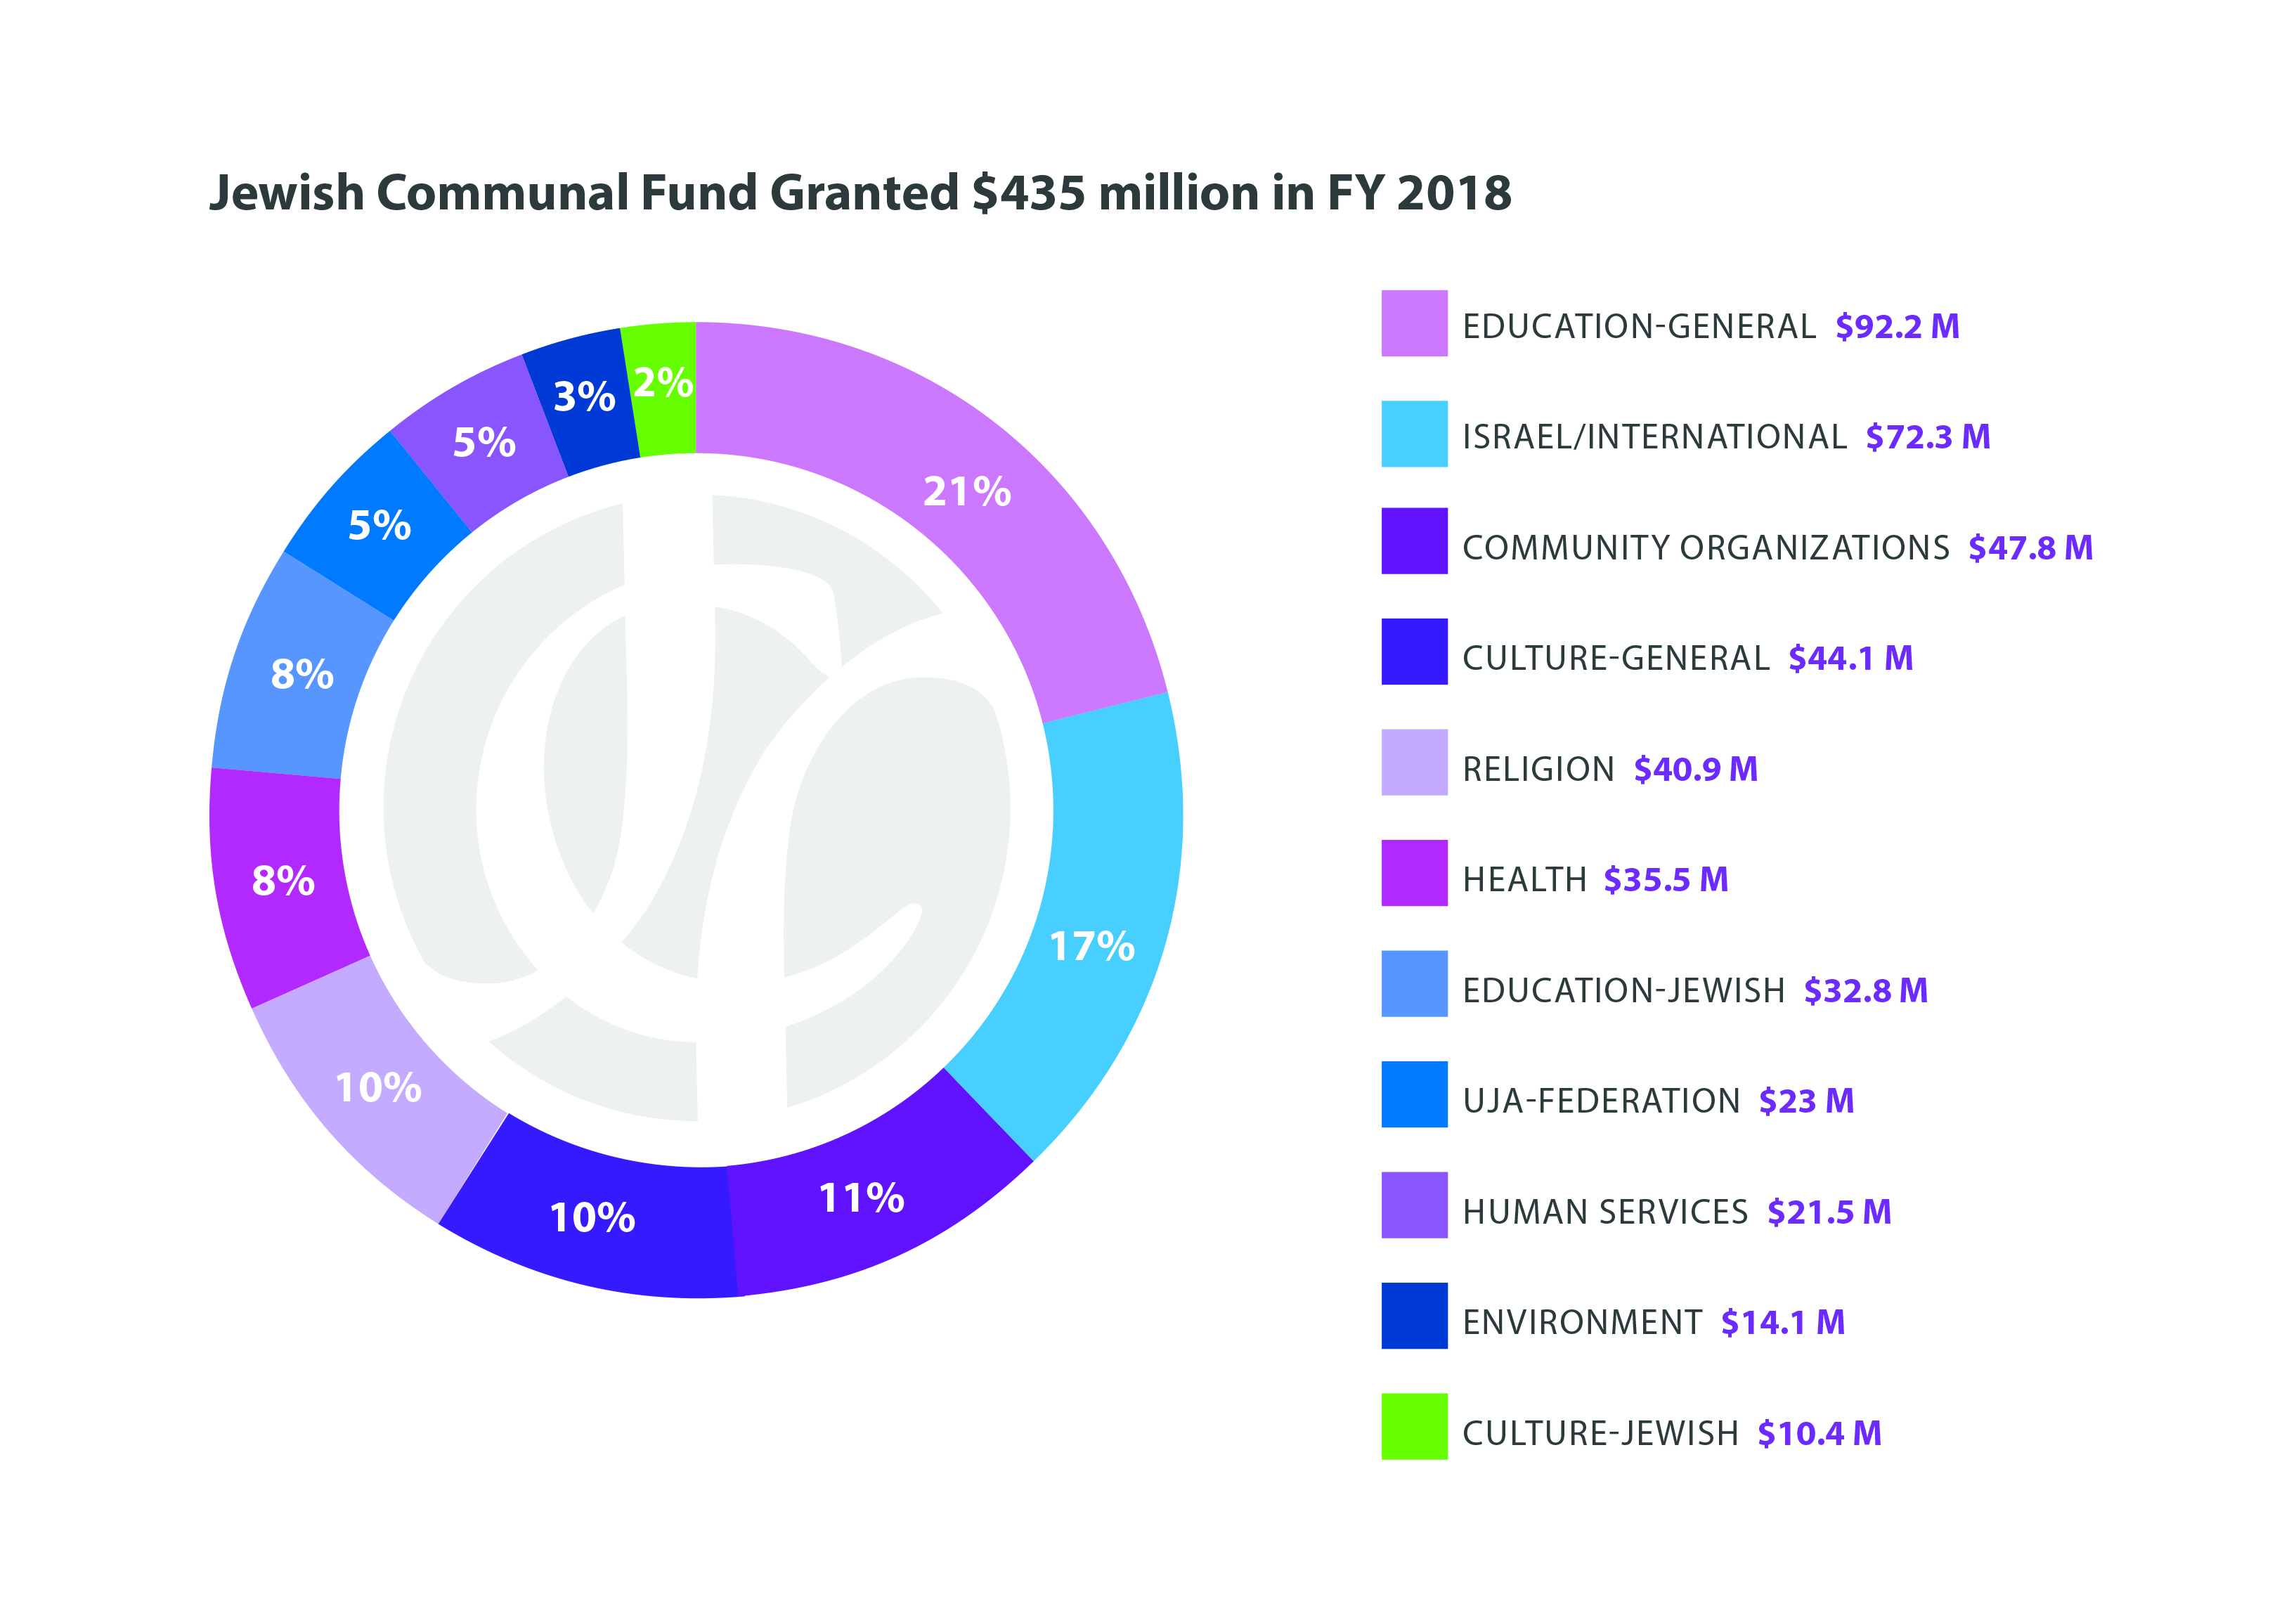 JCF's FY 2018 grant-making